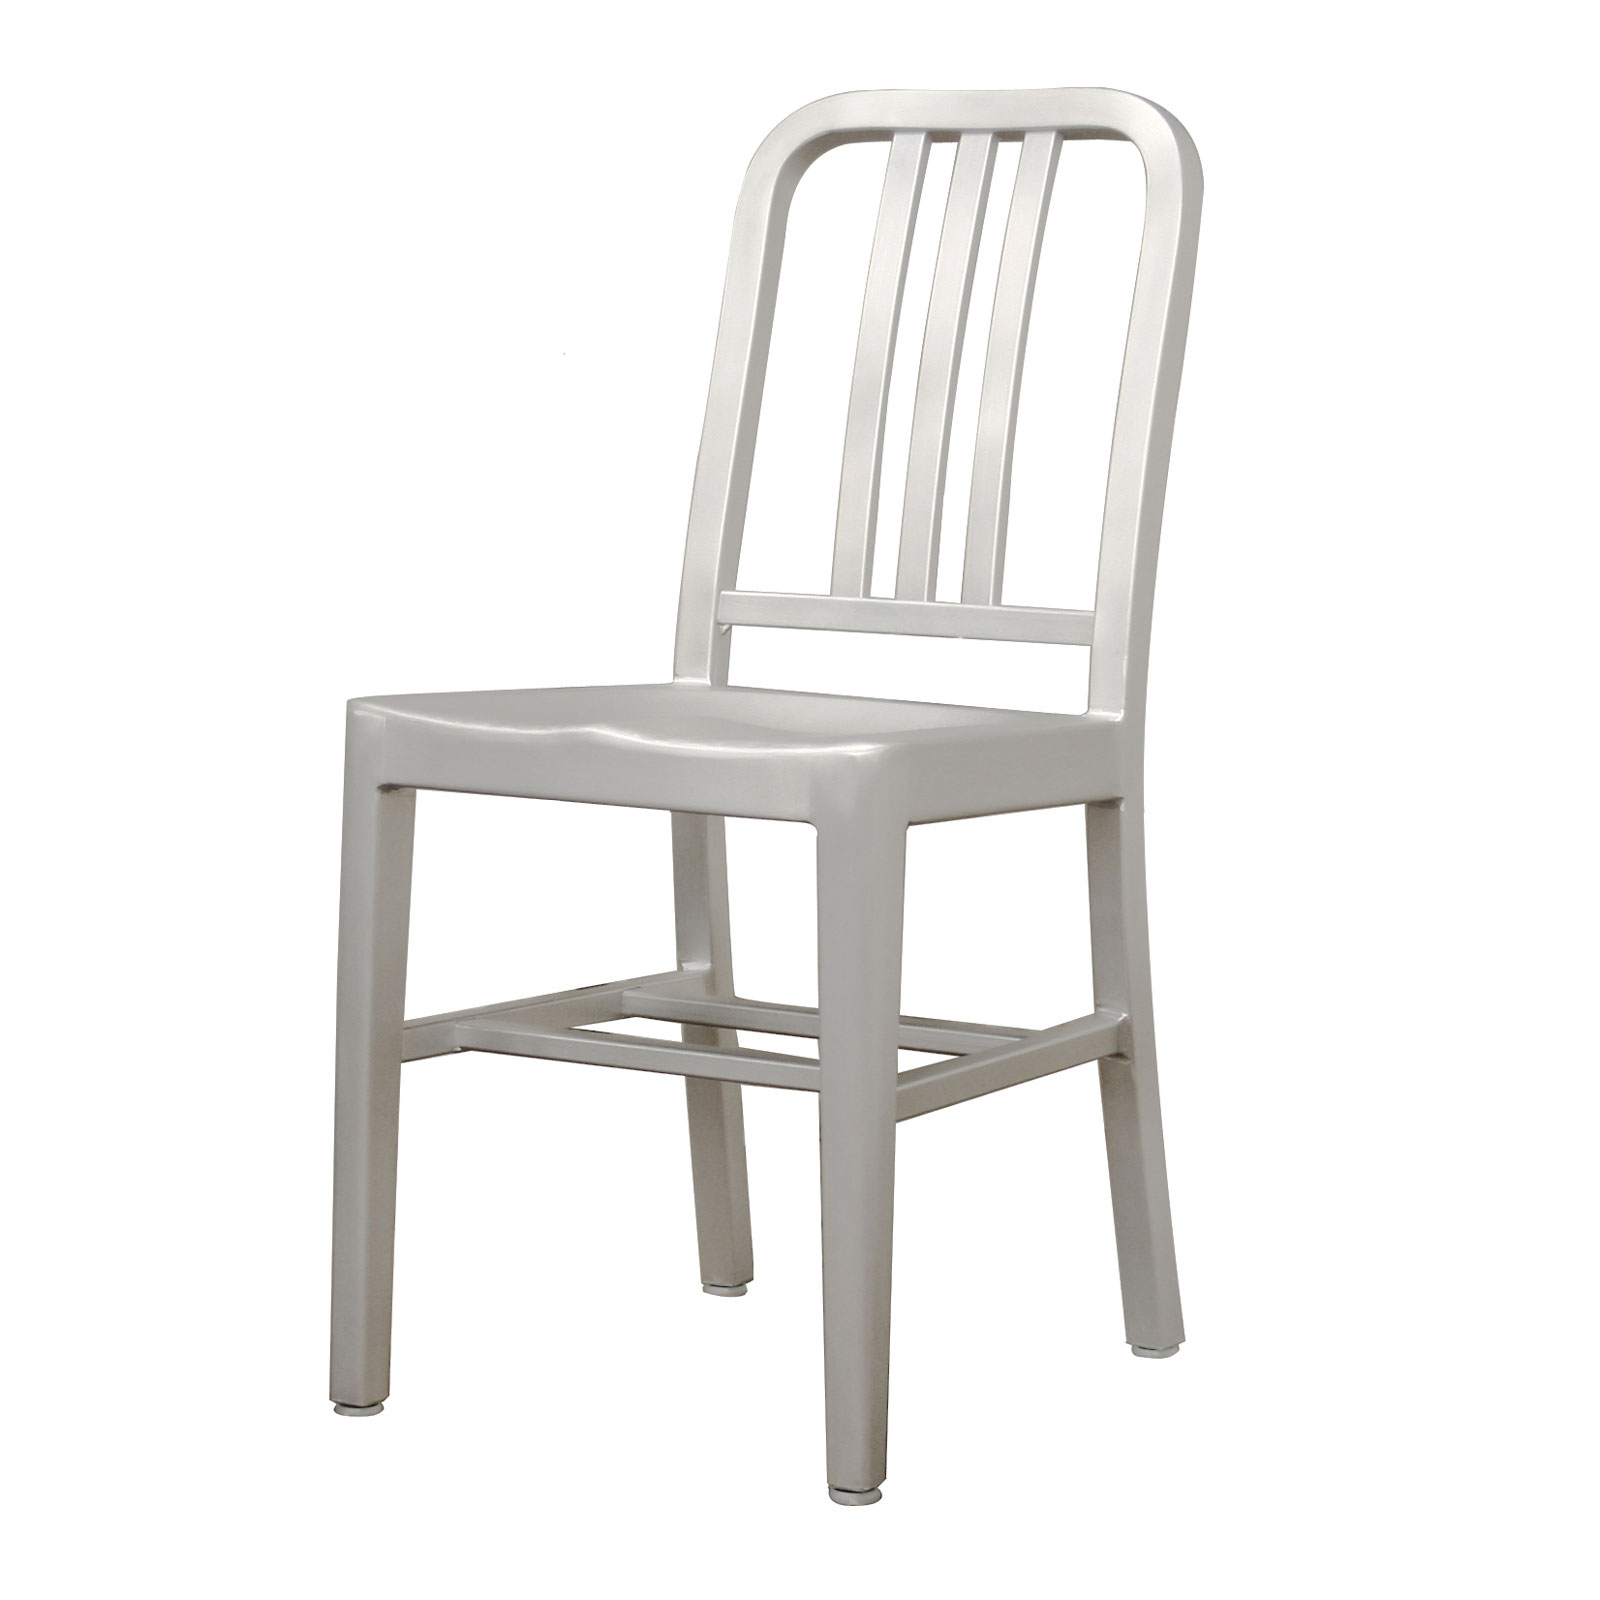 Modern Cafe Chair in Brushed Aluminum  Set of 2  by